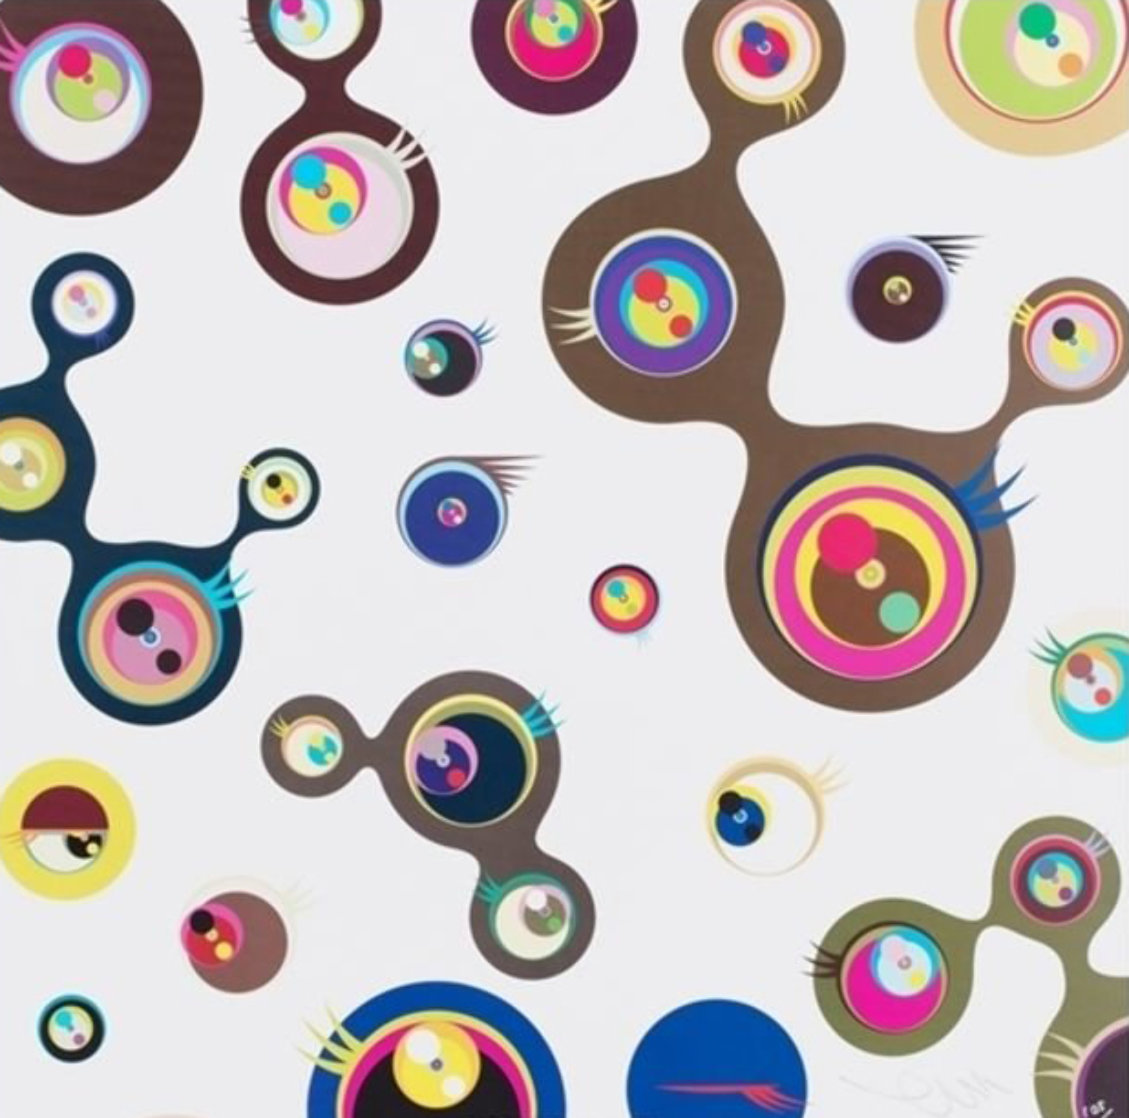 Jellyfish Eyes - White 3 2006 Limited Edition Print by Takashi Murakami